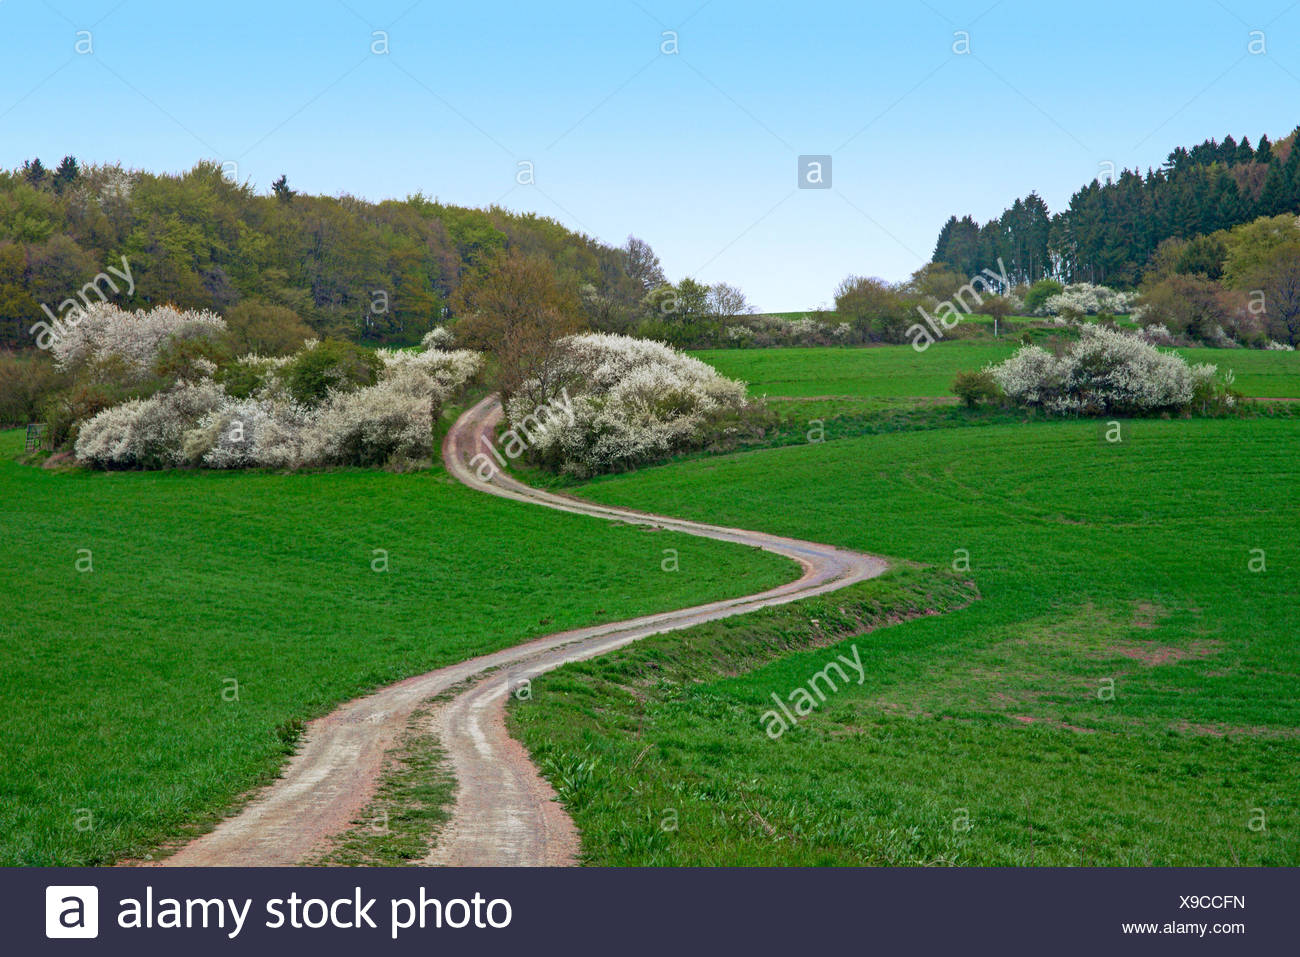 blackthorn, sloe (Prunus spinosa), blooming blackthorns in a meadow landscape with field path, Germany, Rhineland-Palatinate, Eifel - Stock Image